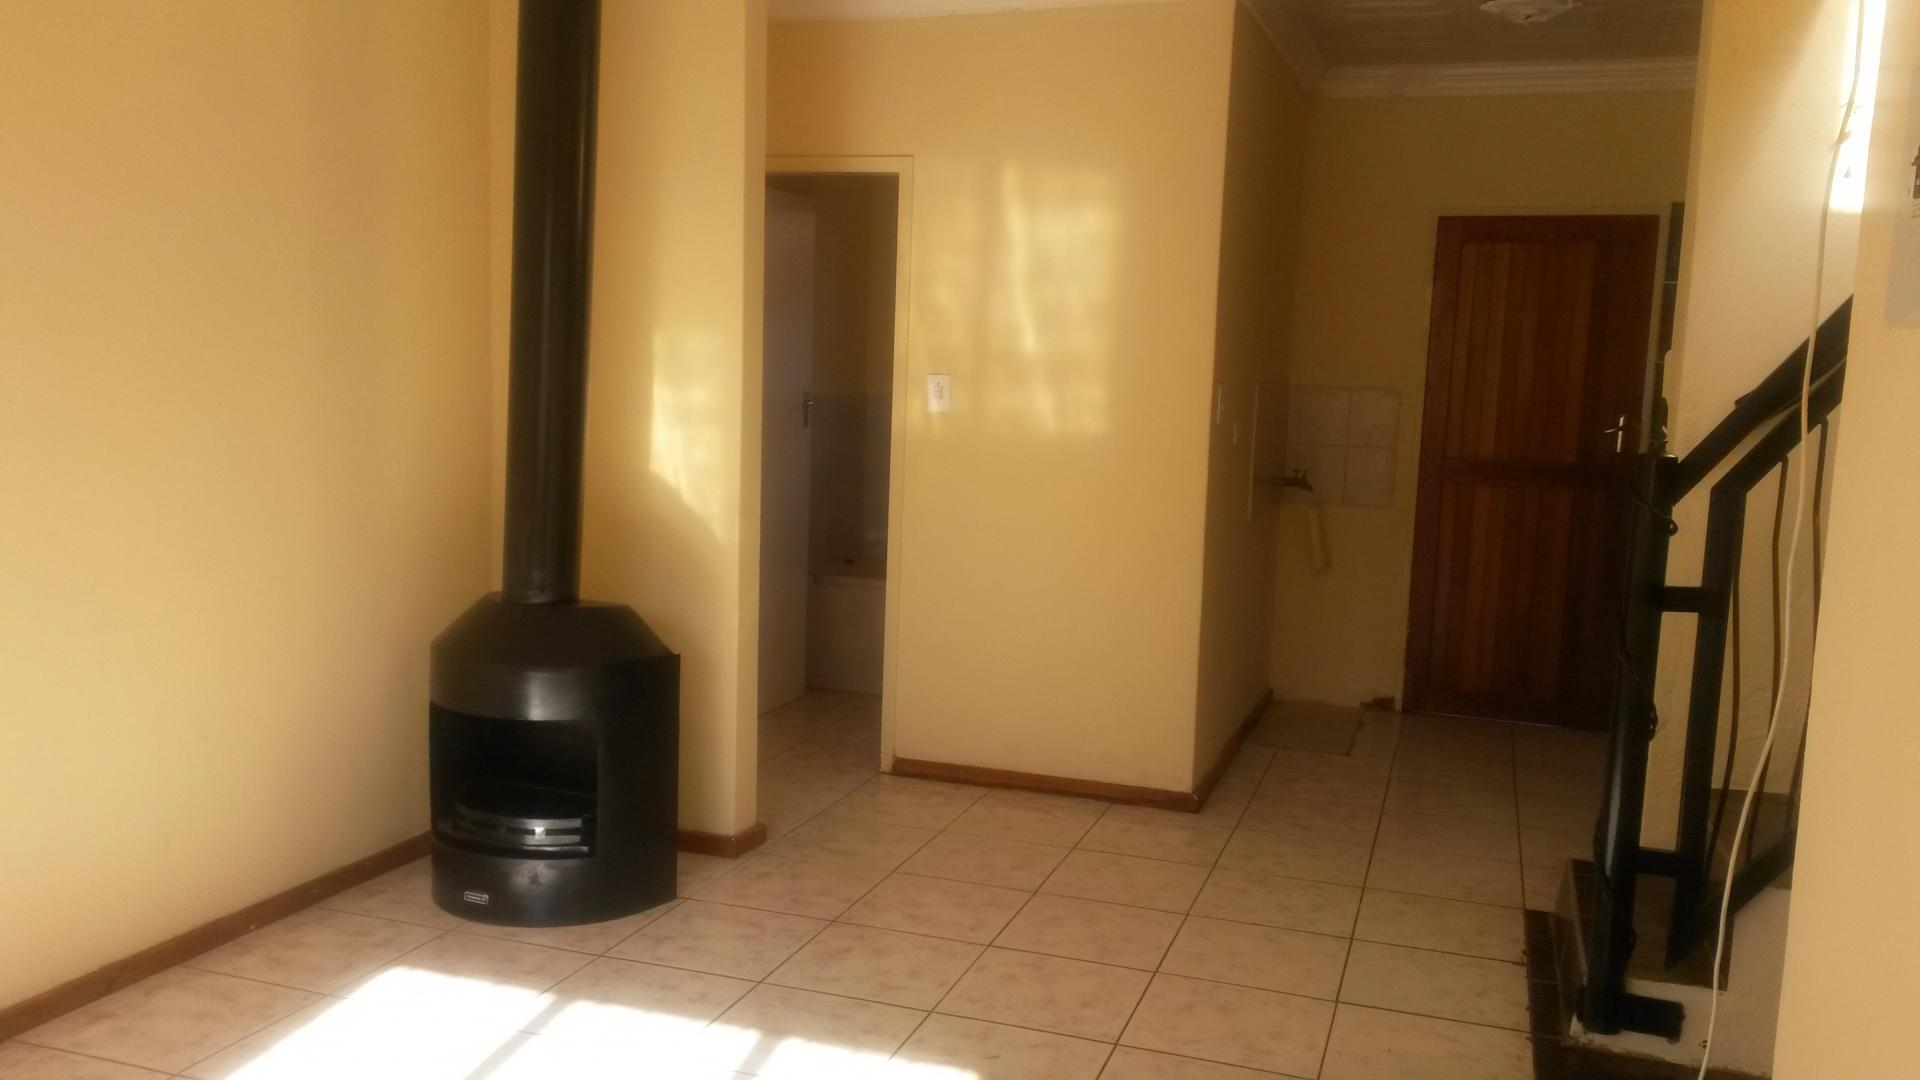 Rooms of property in Polokwane